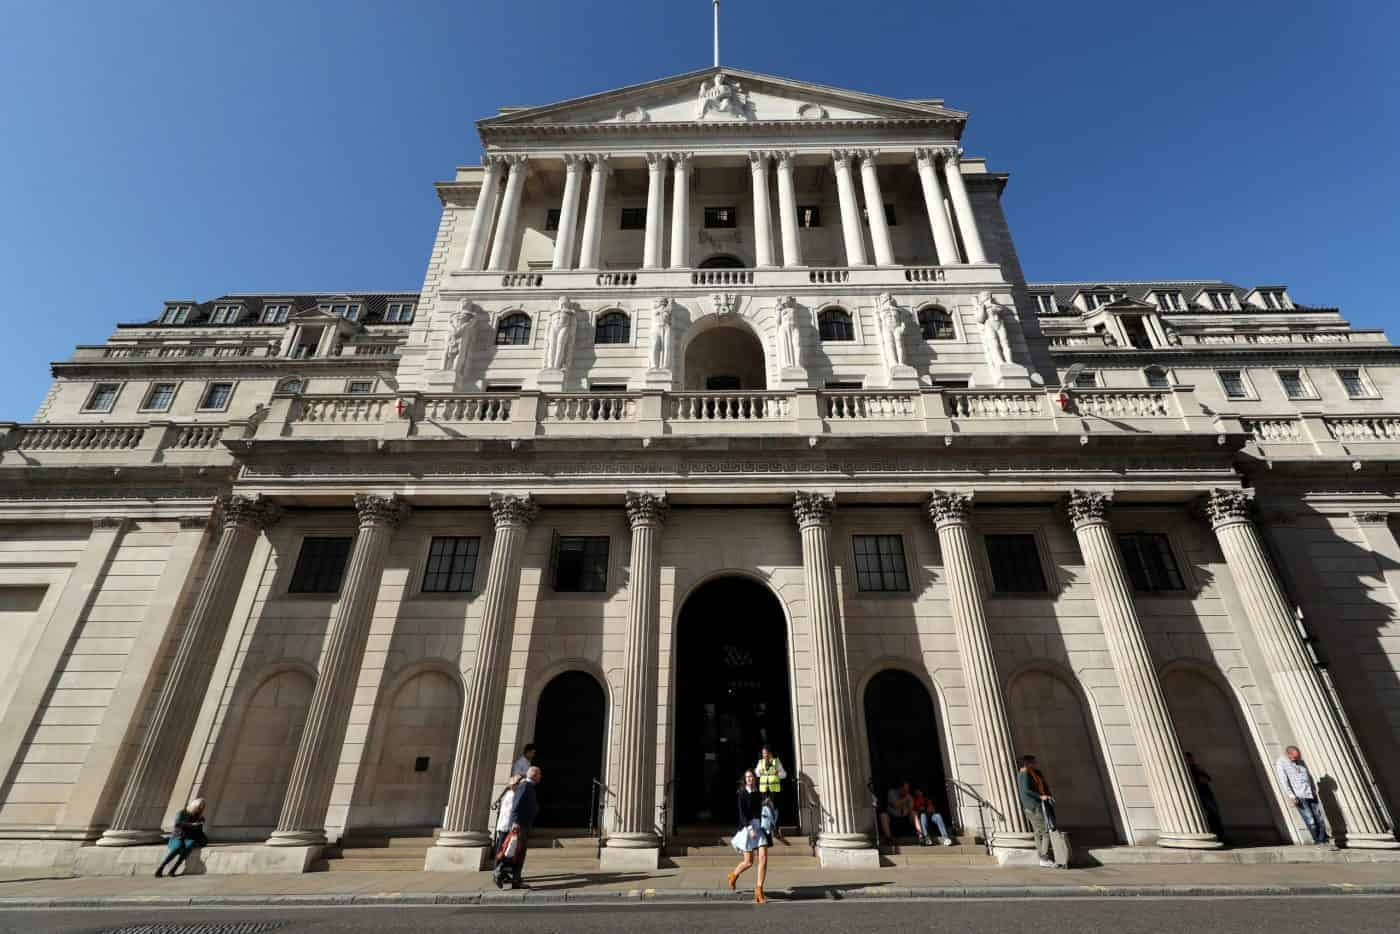 Bank of England tells banks to 'prepare' for no deal Brexit